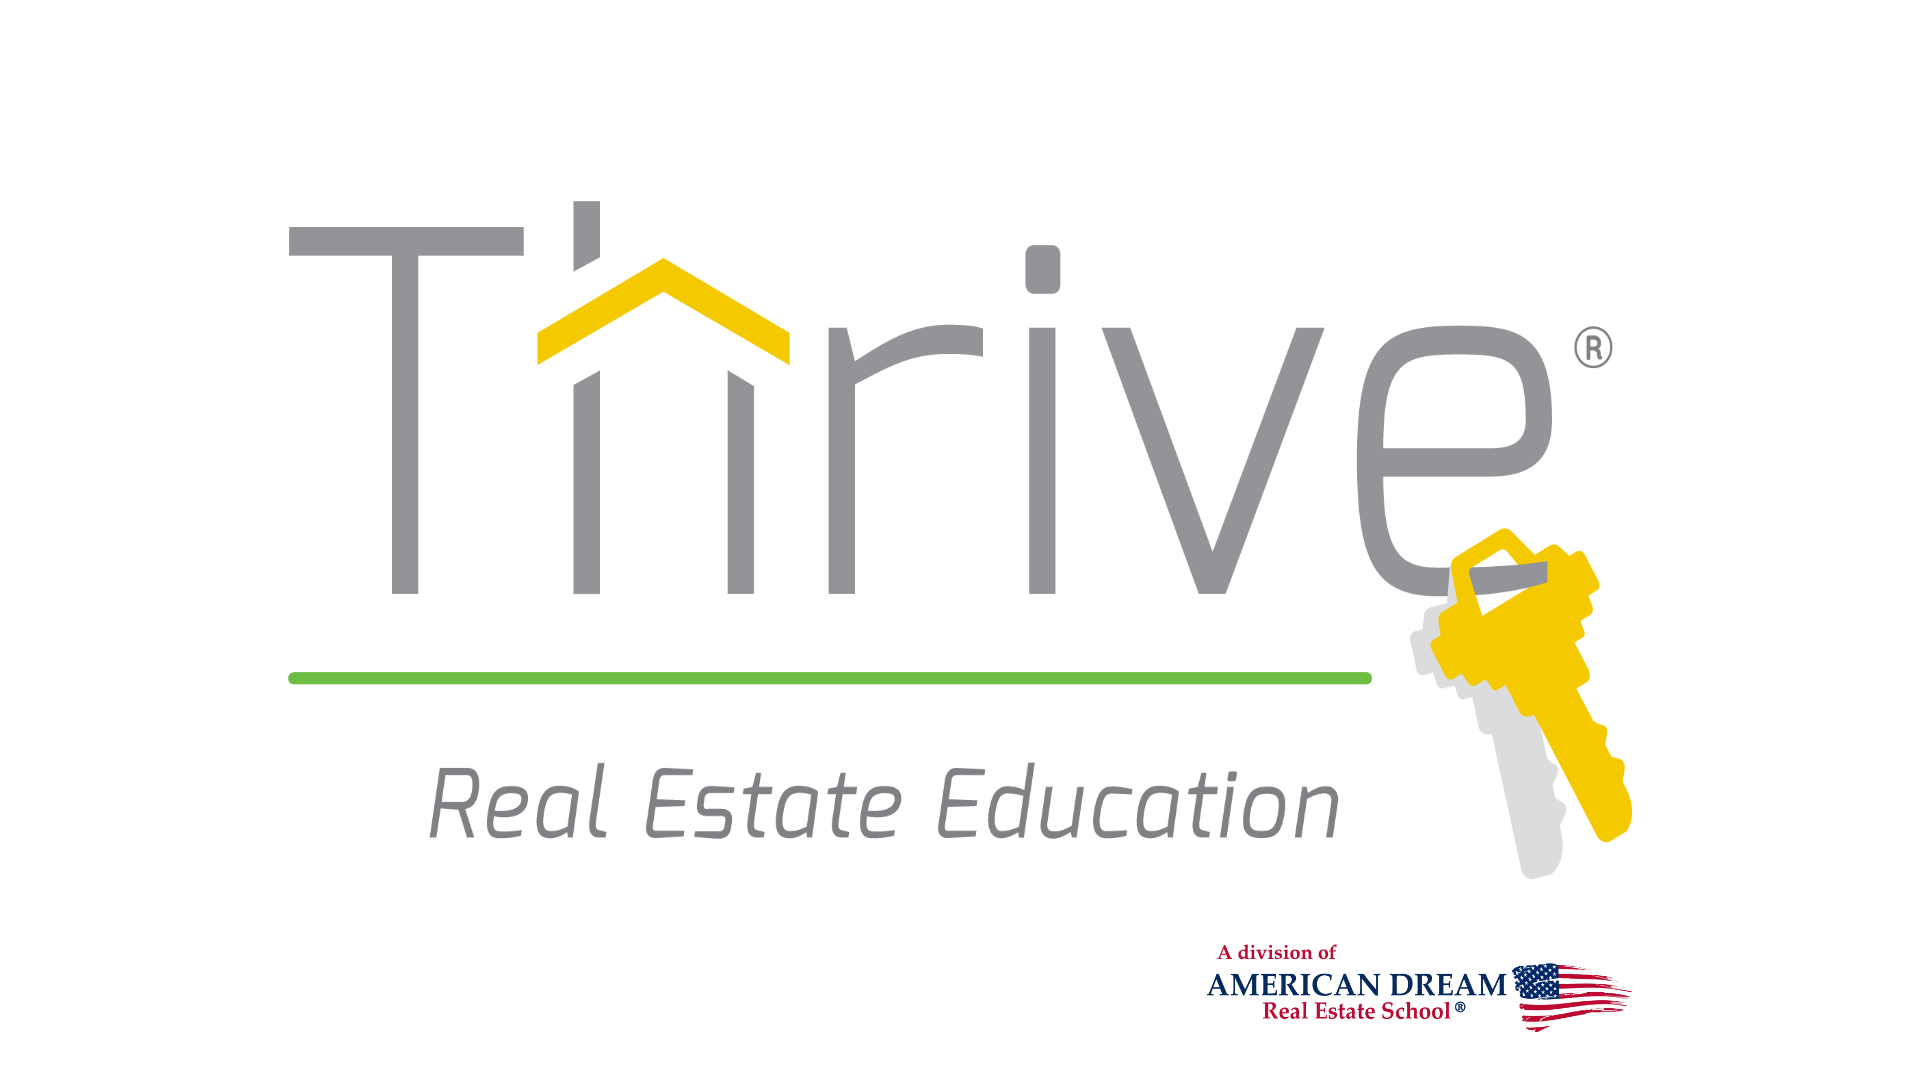 Thrive Real Estate Education by American Dream Real Estate